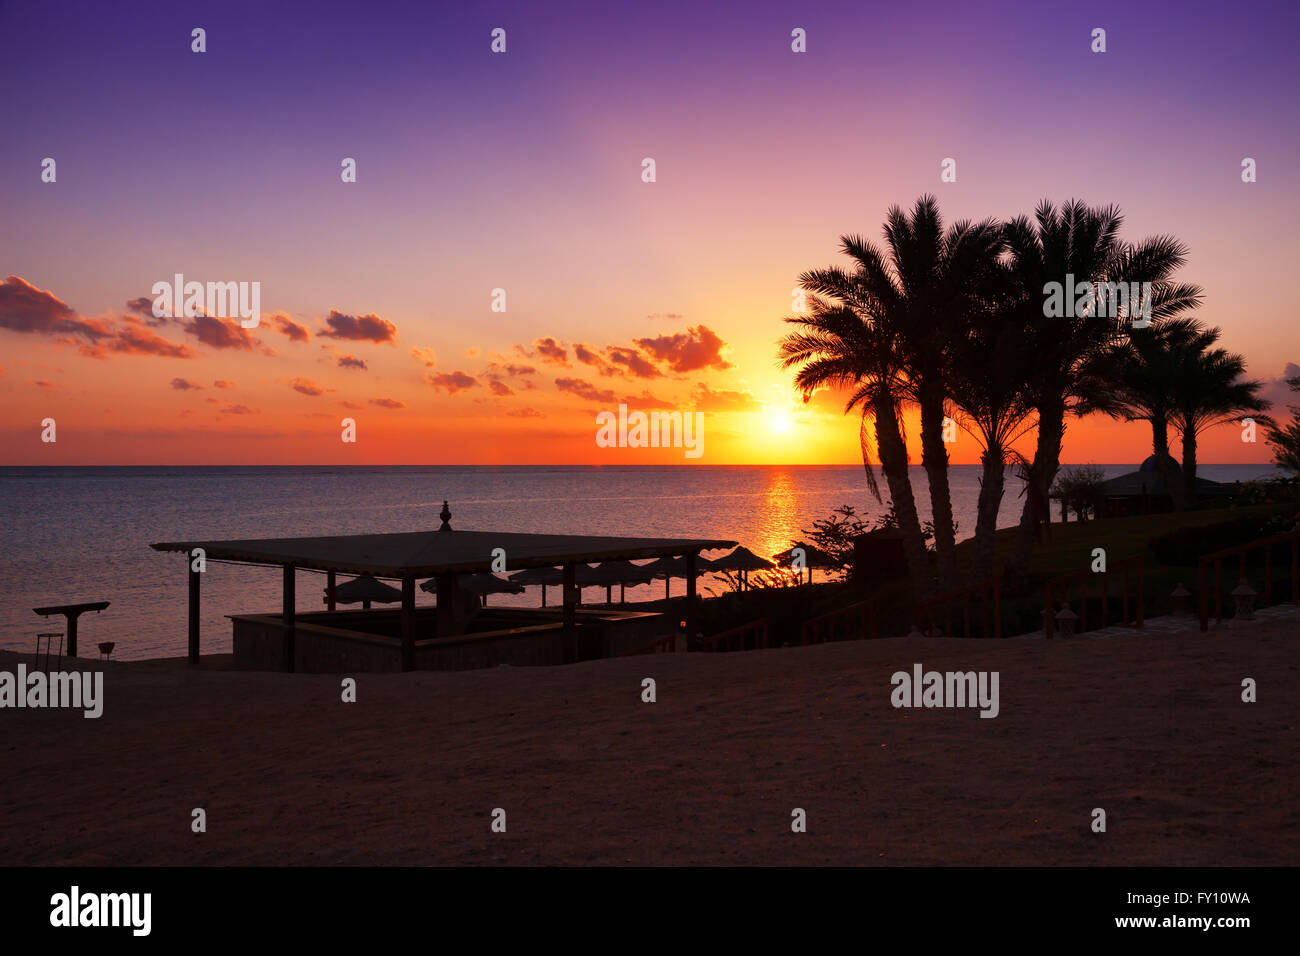 Sunset over the Red sea, Marsa Alam, Egypt - Stock Image